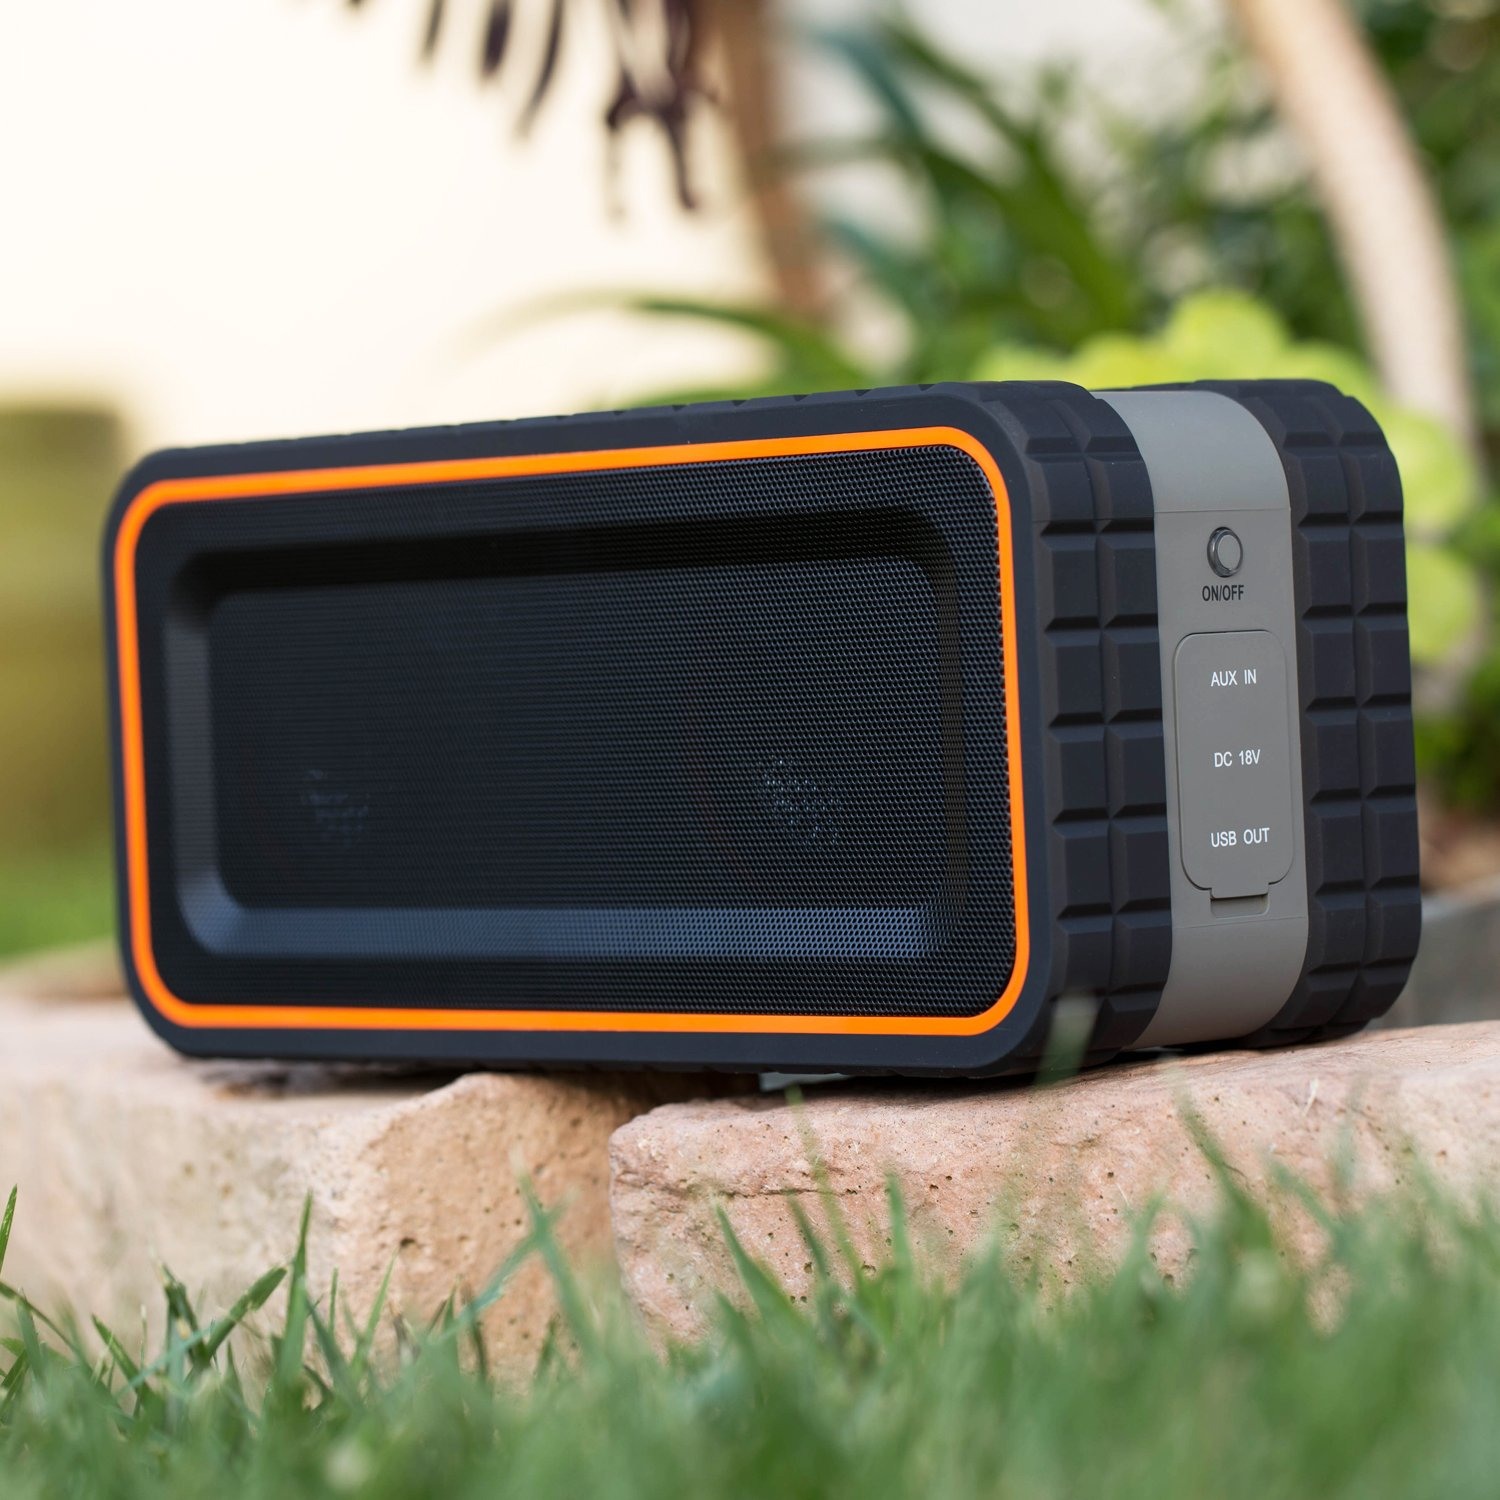 Turcom AcoustoShock Outdoor Bluetooth Speaker